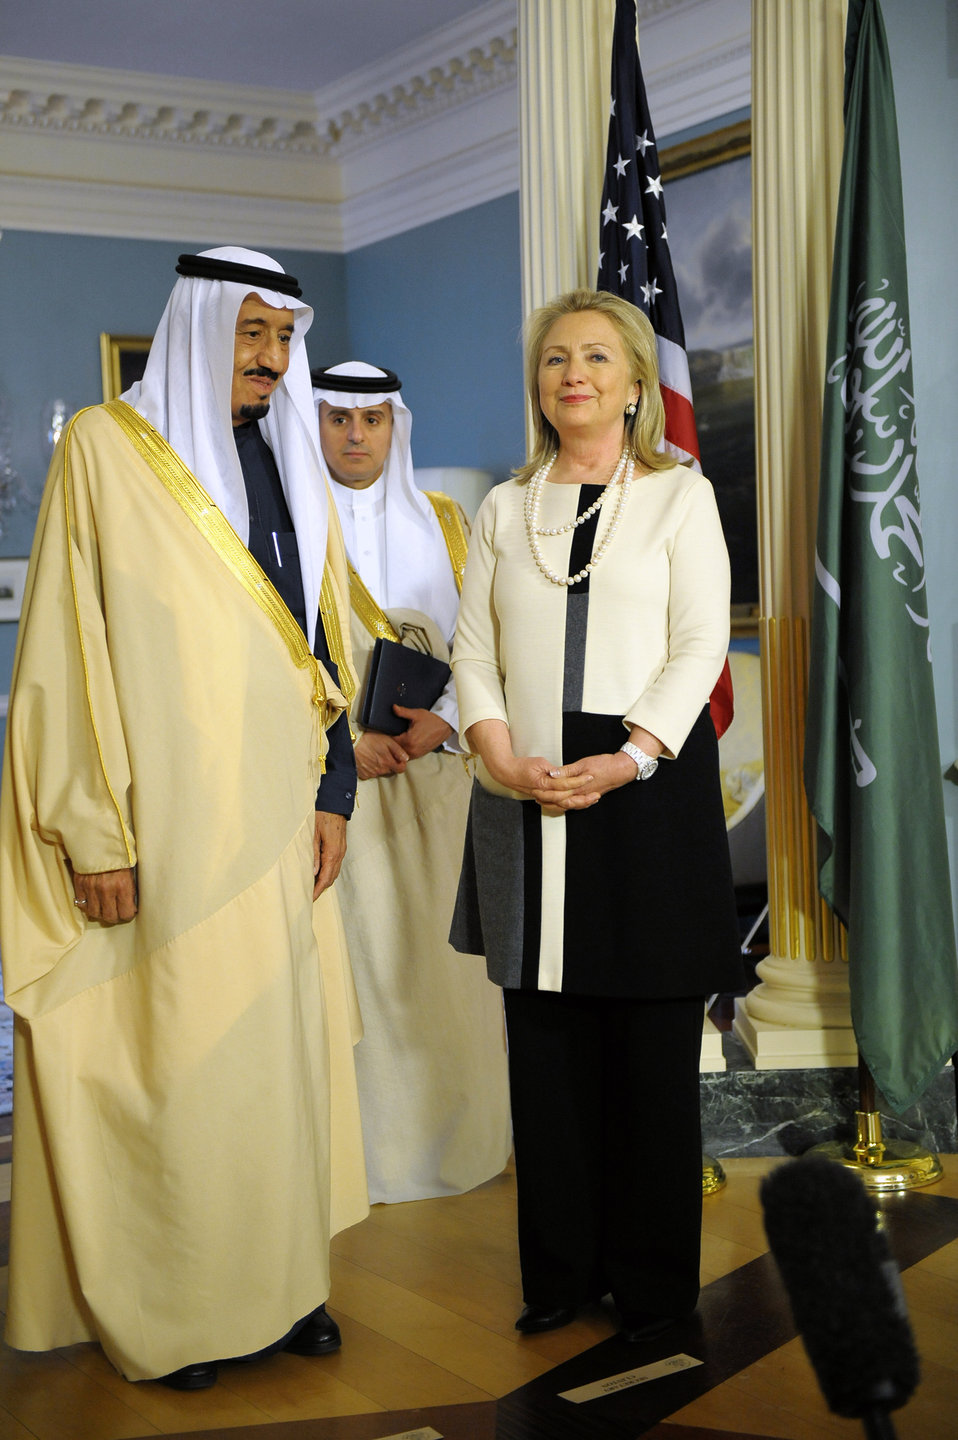 Secretary Clinton Poses With Saudi Arabian Defense Minister Salman